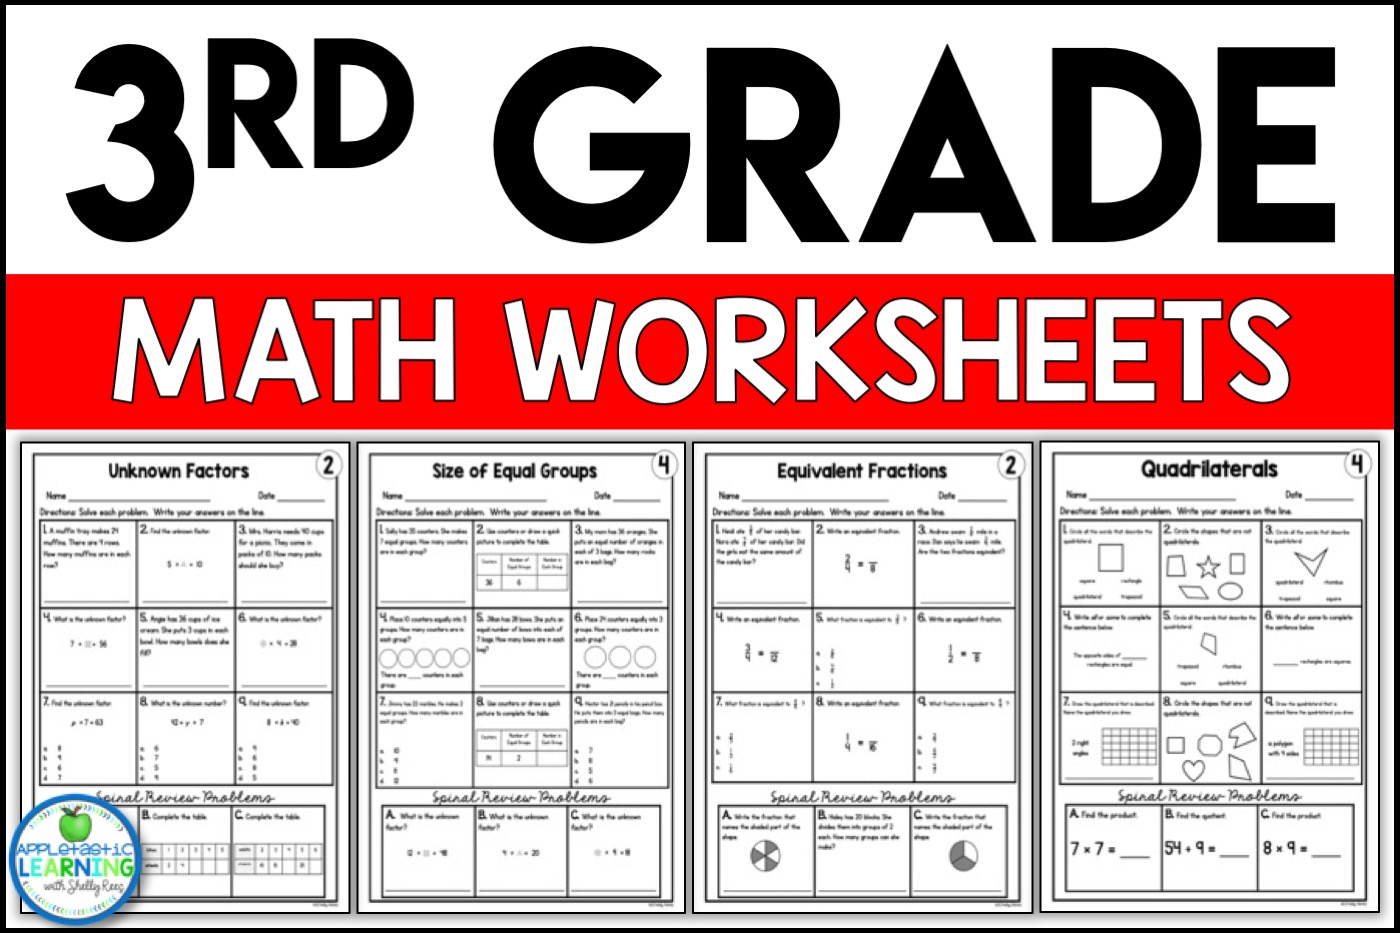 hight resolution of 3rd Grade Math Worksheets Free and Printable - Appletastic Learning